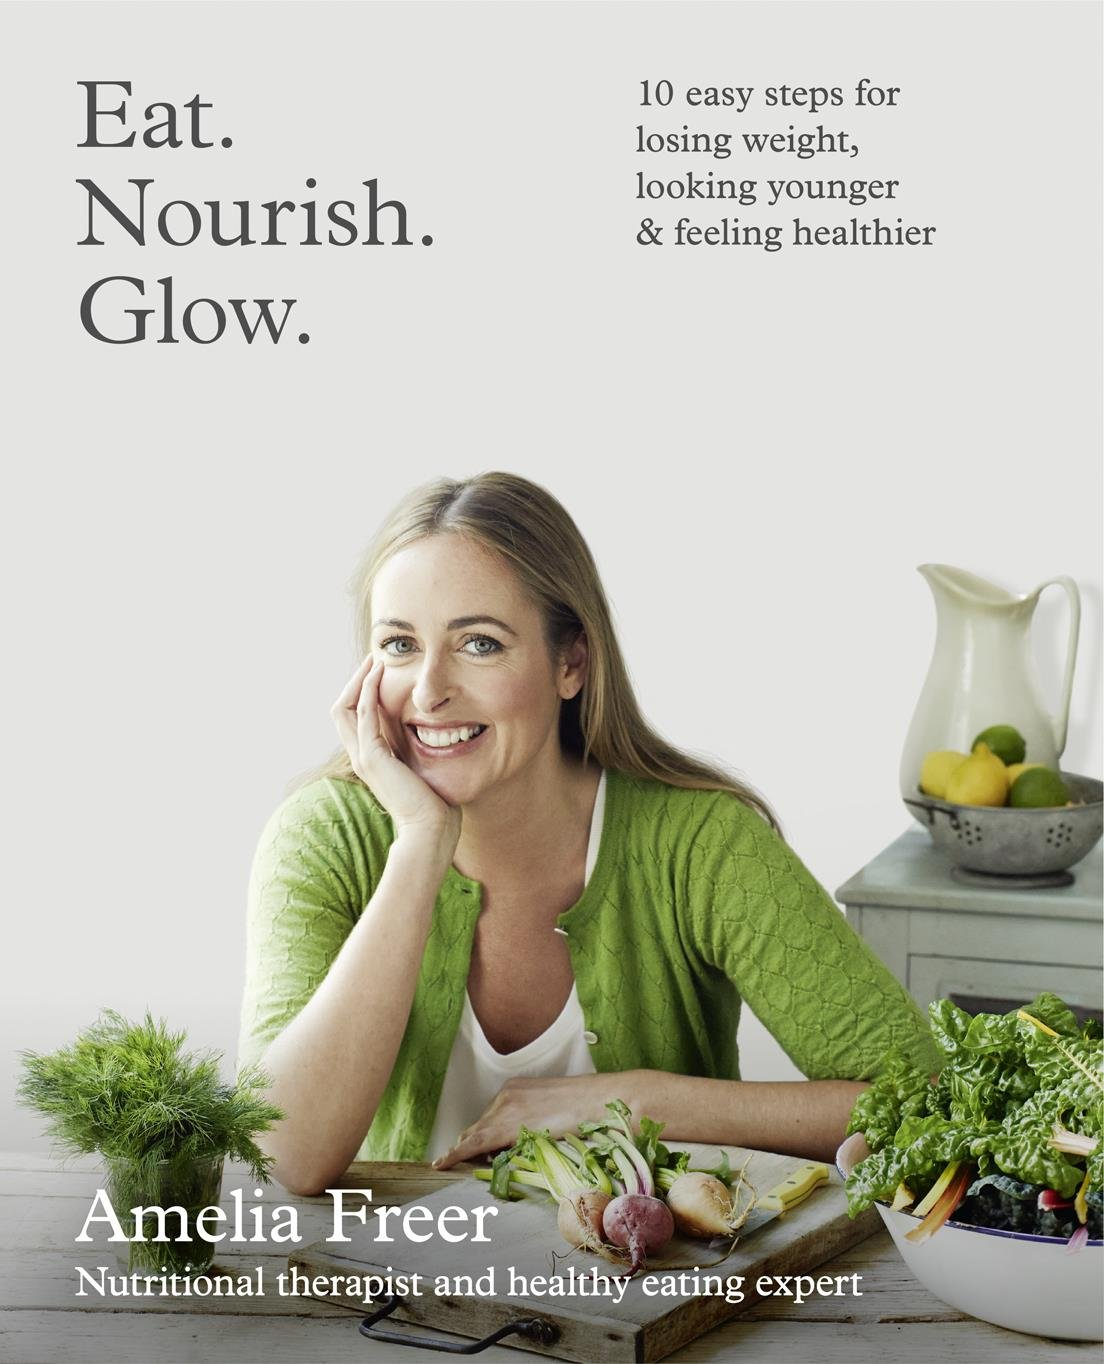 Eat. Nourish. Glow.: 10 easy steps for losing weight, lookin...